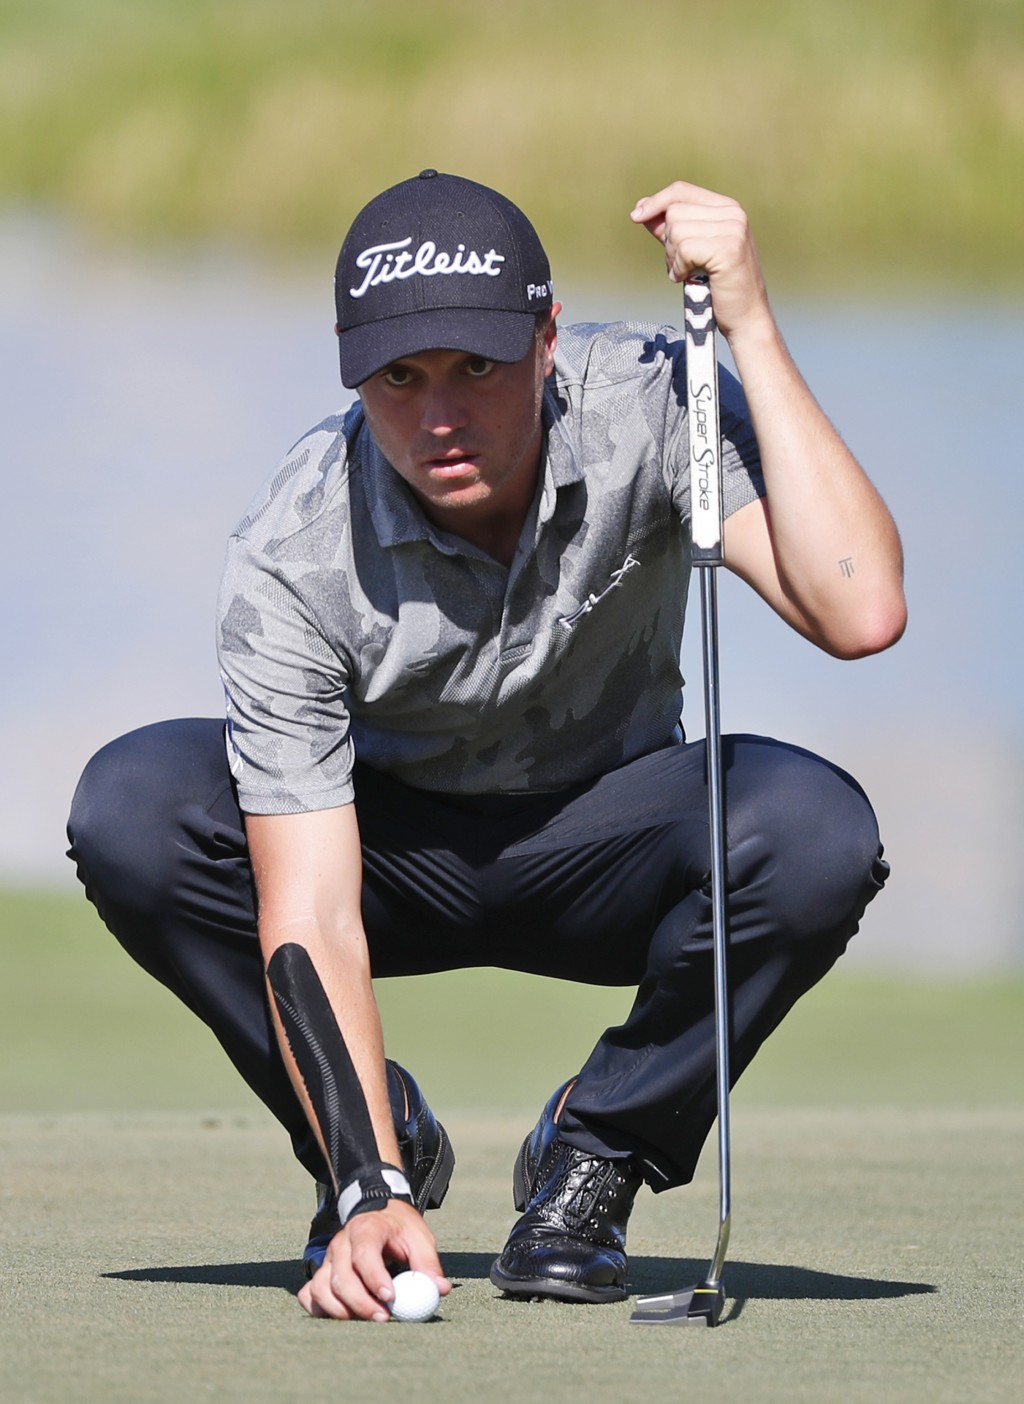 FILE - In this March 2, 2019, file photo, Justin Thomas lines up a putt on the eighth hole during the third round of the Honda Classic golf tournament